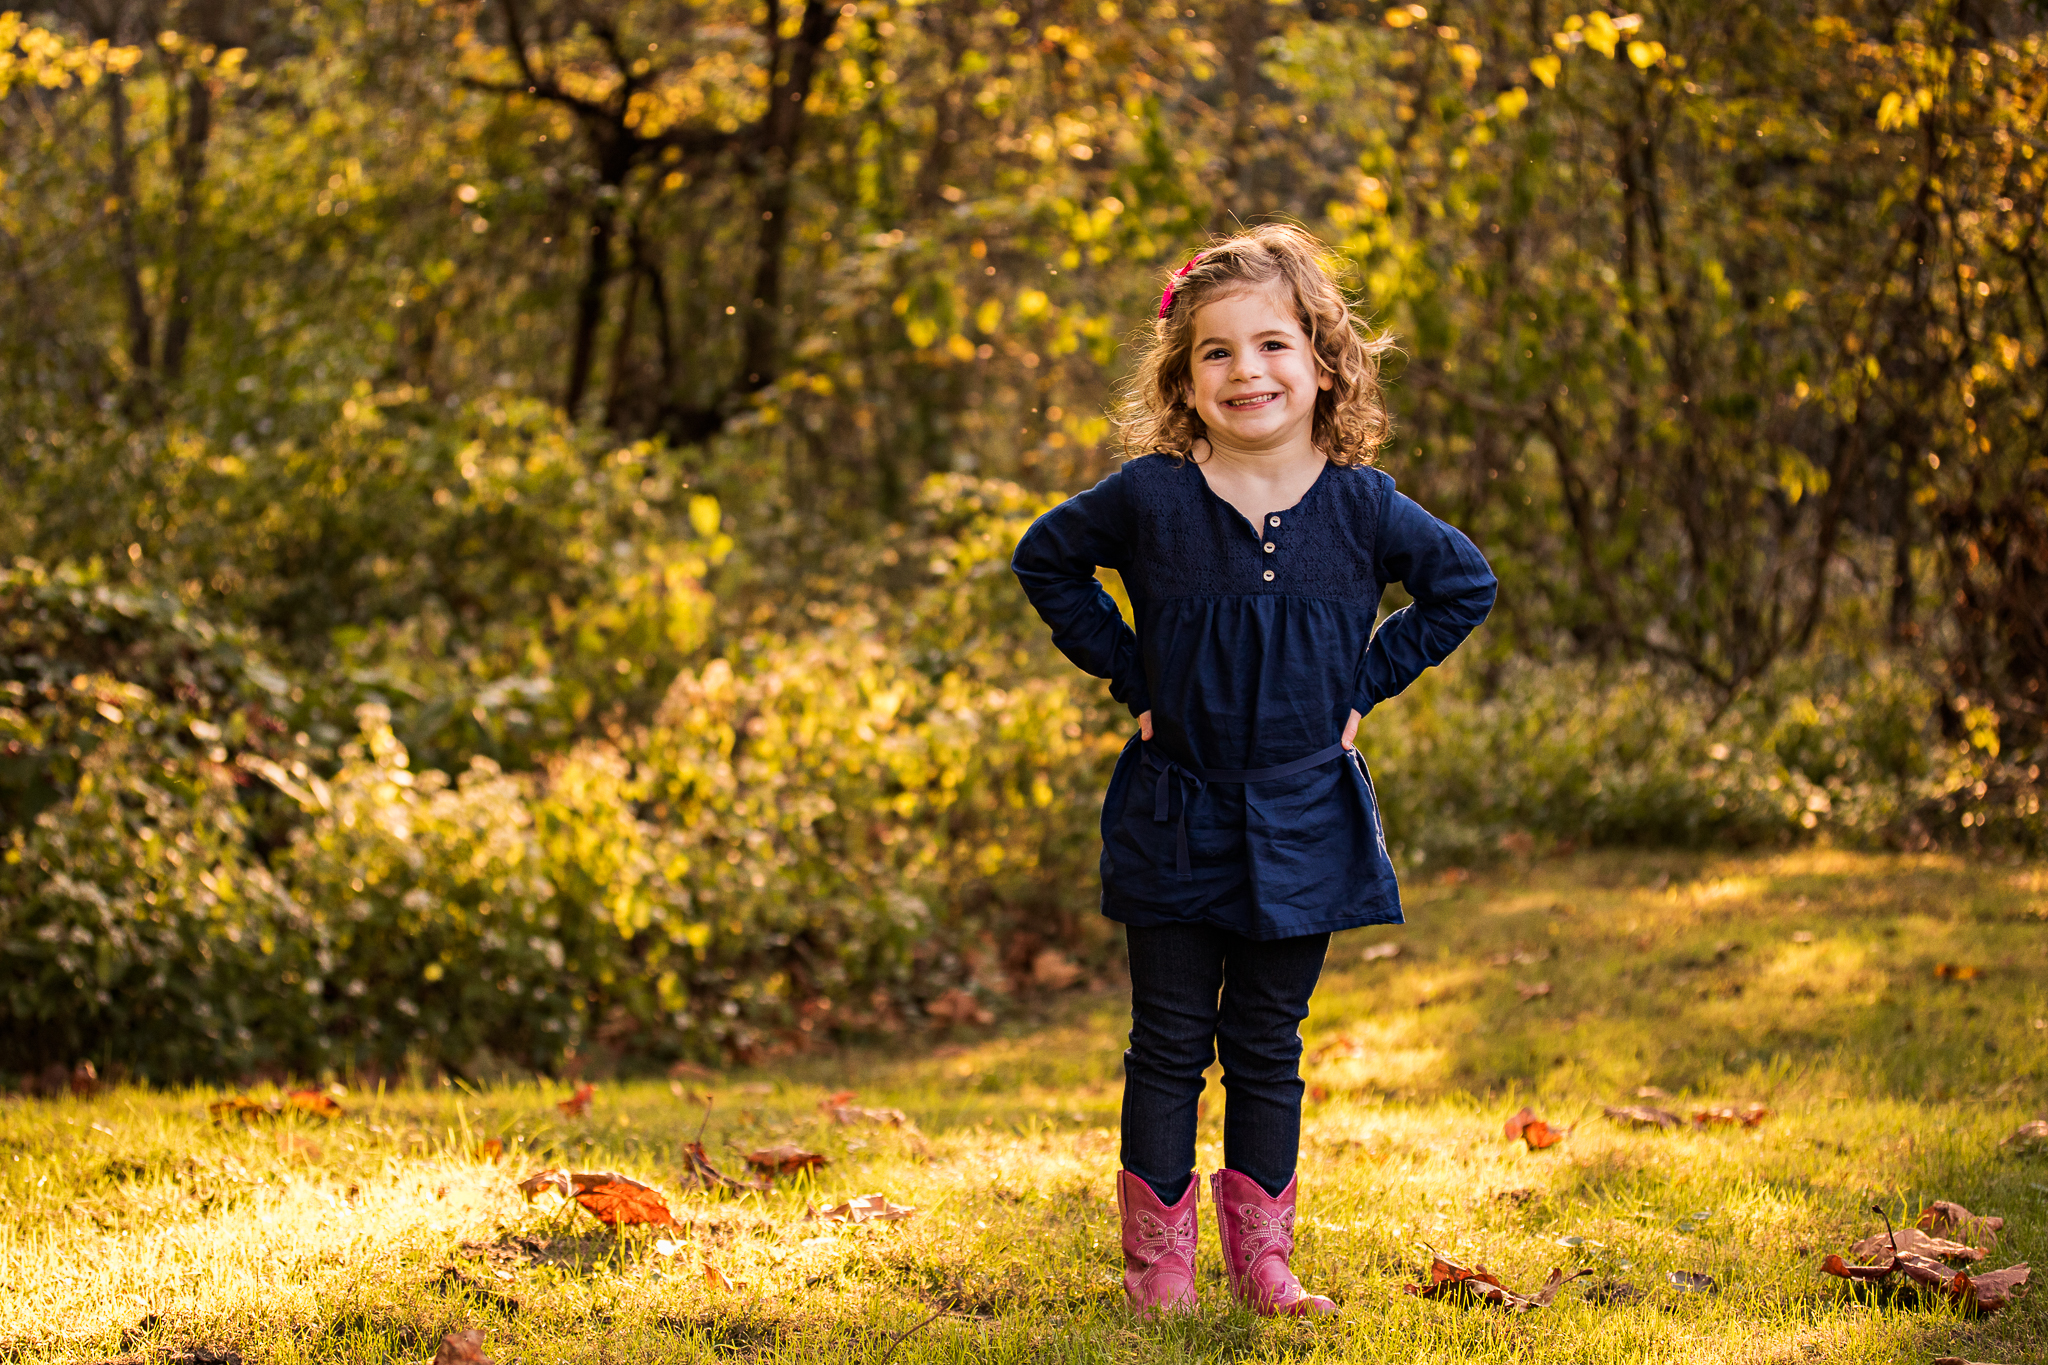 NancyElizabeth New Jersey Family Photographer | Smiling Preschooler in Cowgirl Boots